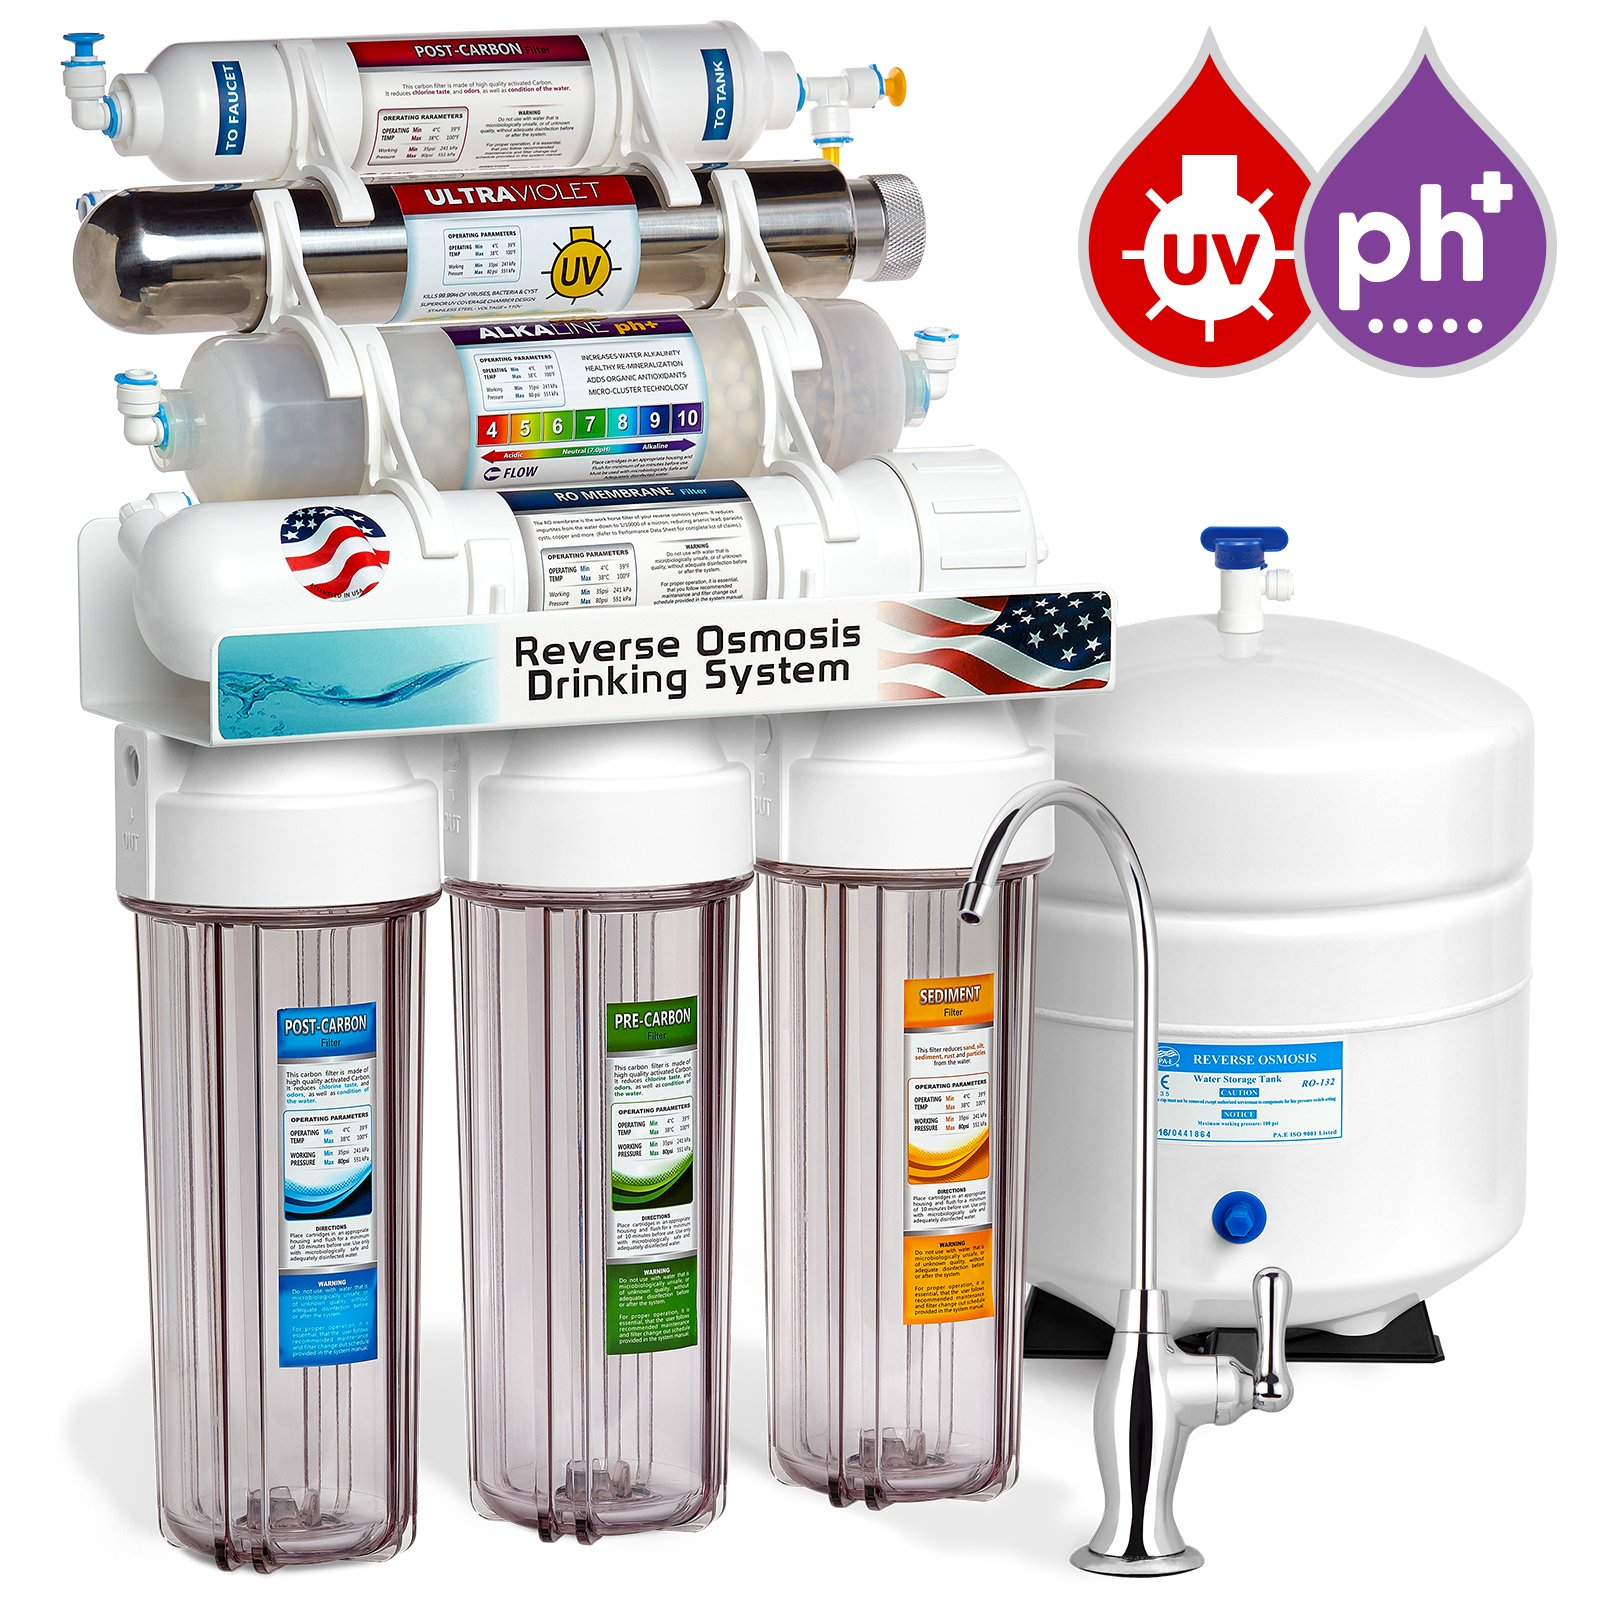 Express Water 11 Stage UV Ultraviolet + Alkaline + Reverse Osmosis Home Drinking Water Filtration System 100 GPD RO Membrane Filter - Deluxe Faucet - Clear Housing